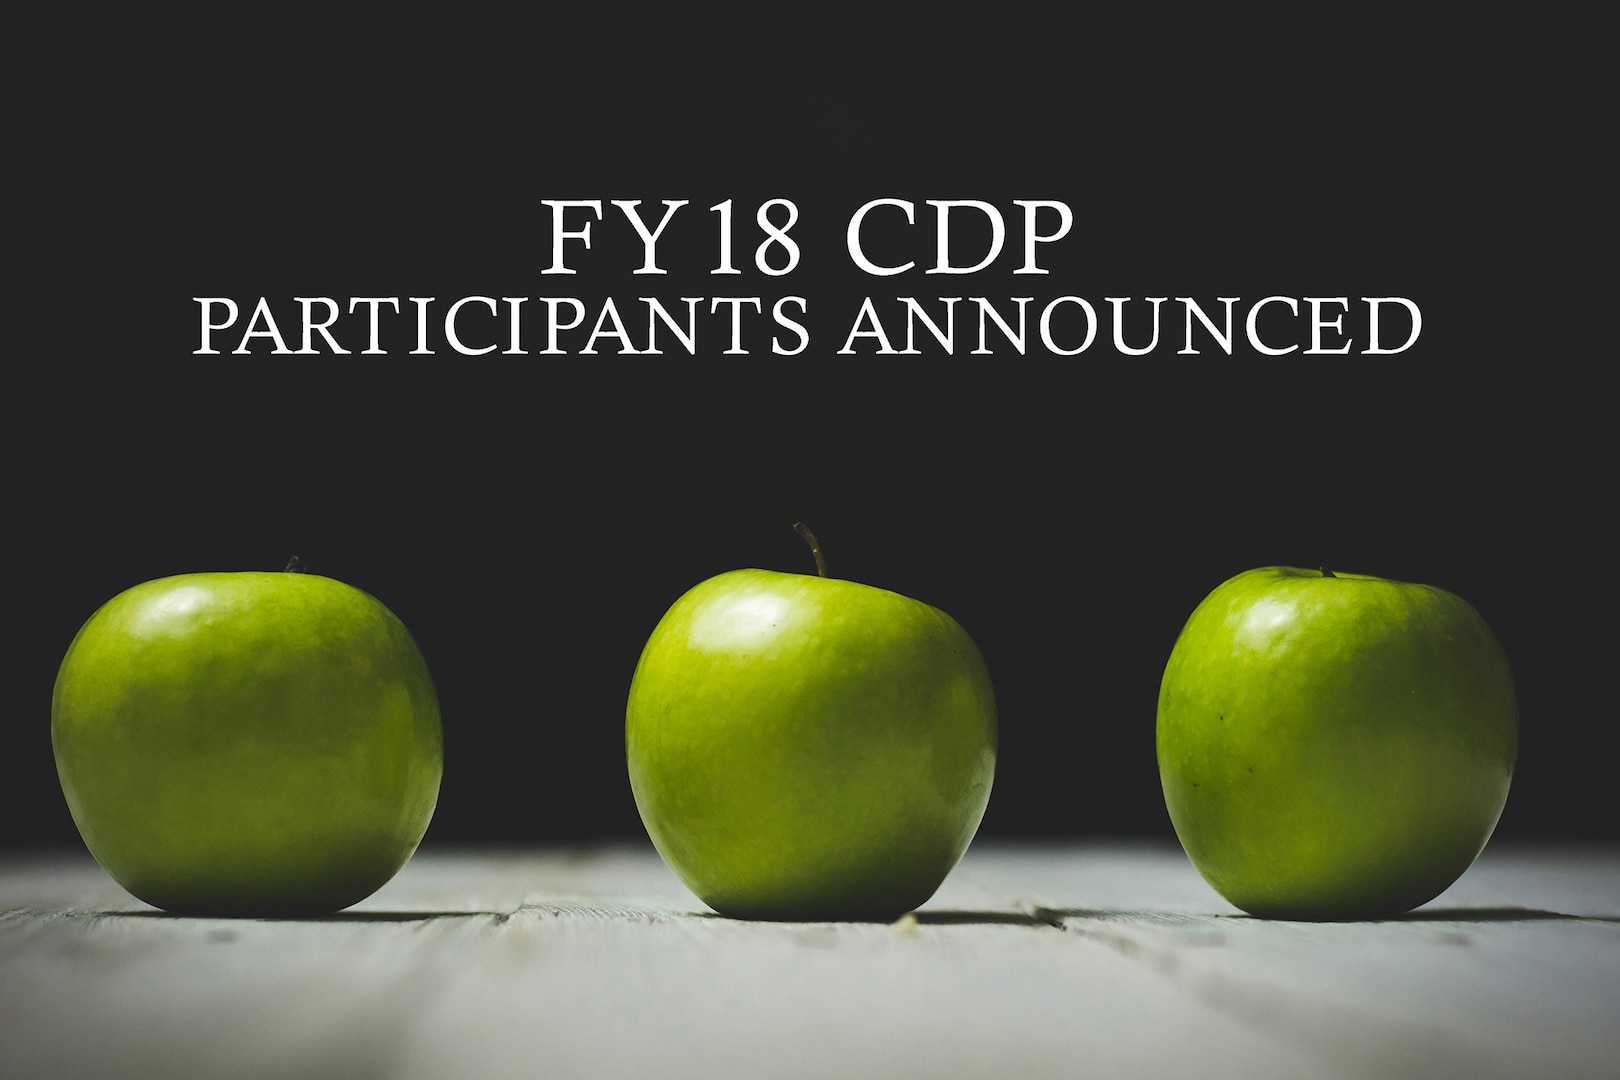 FY18 CDP participants announced